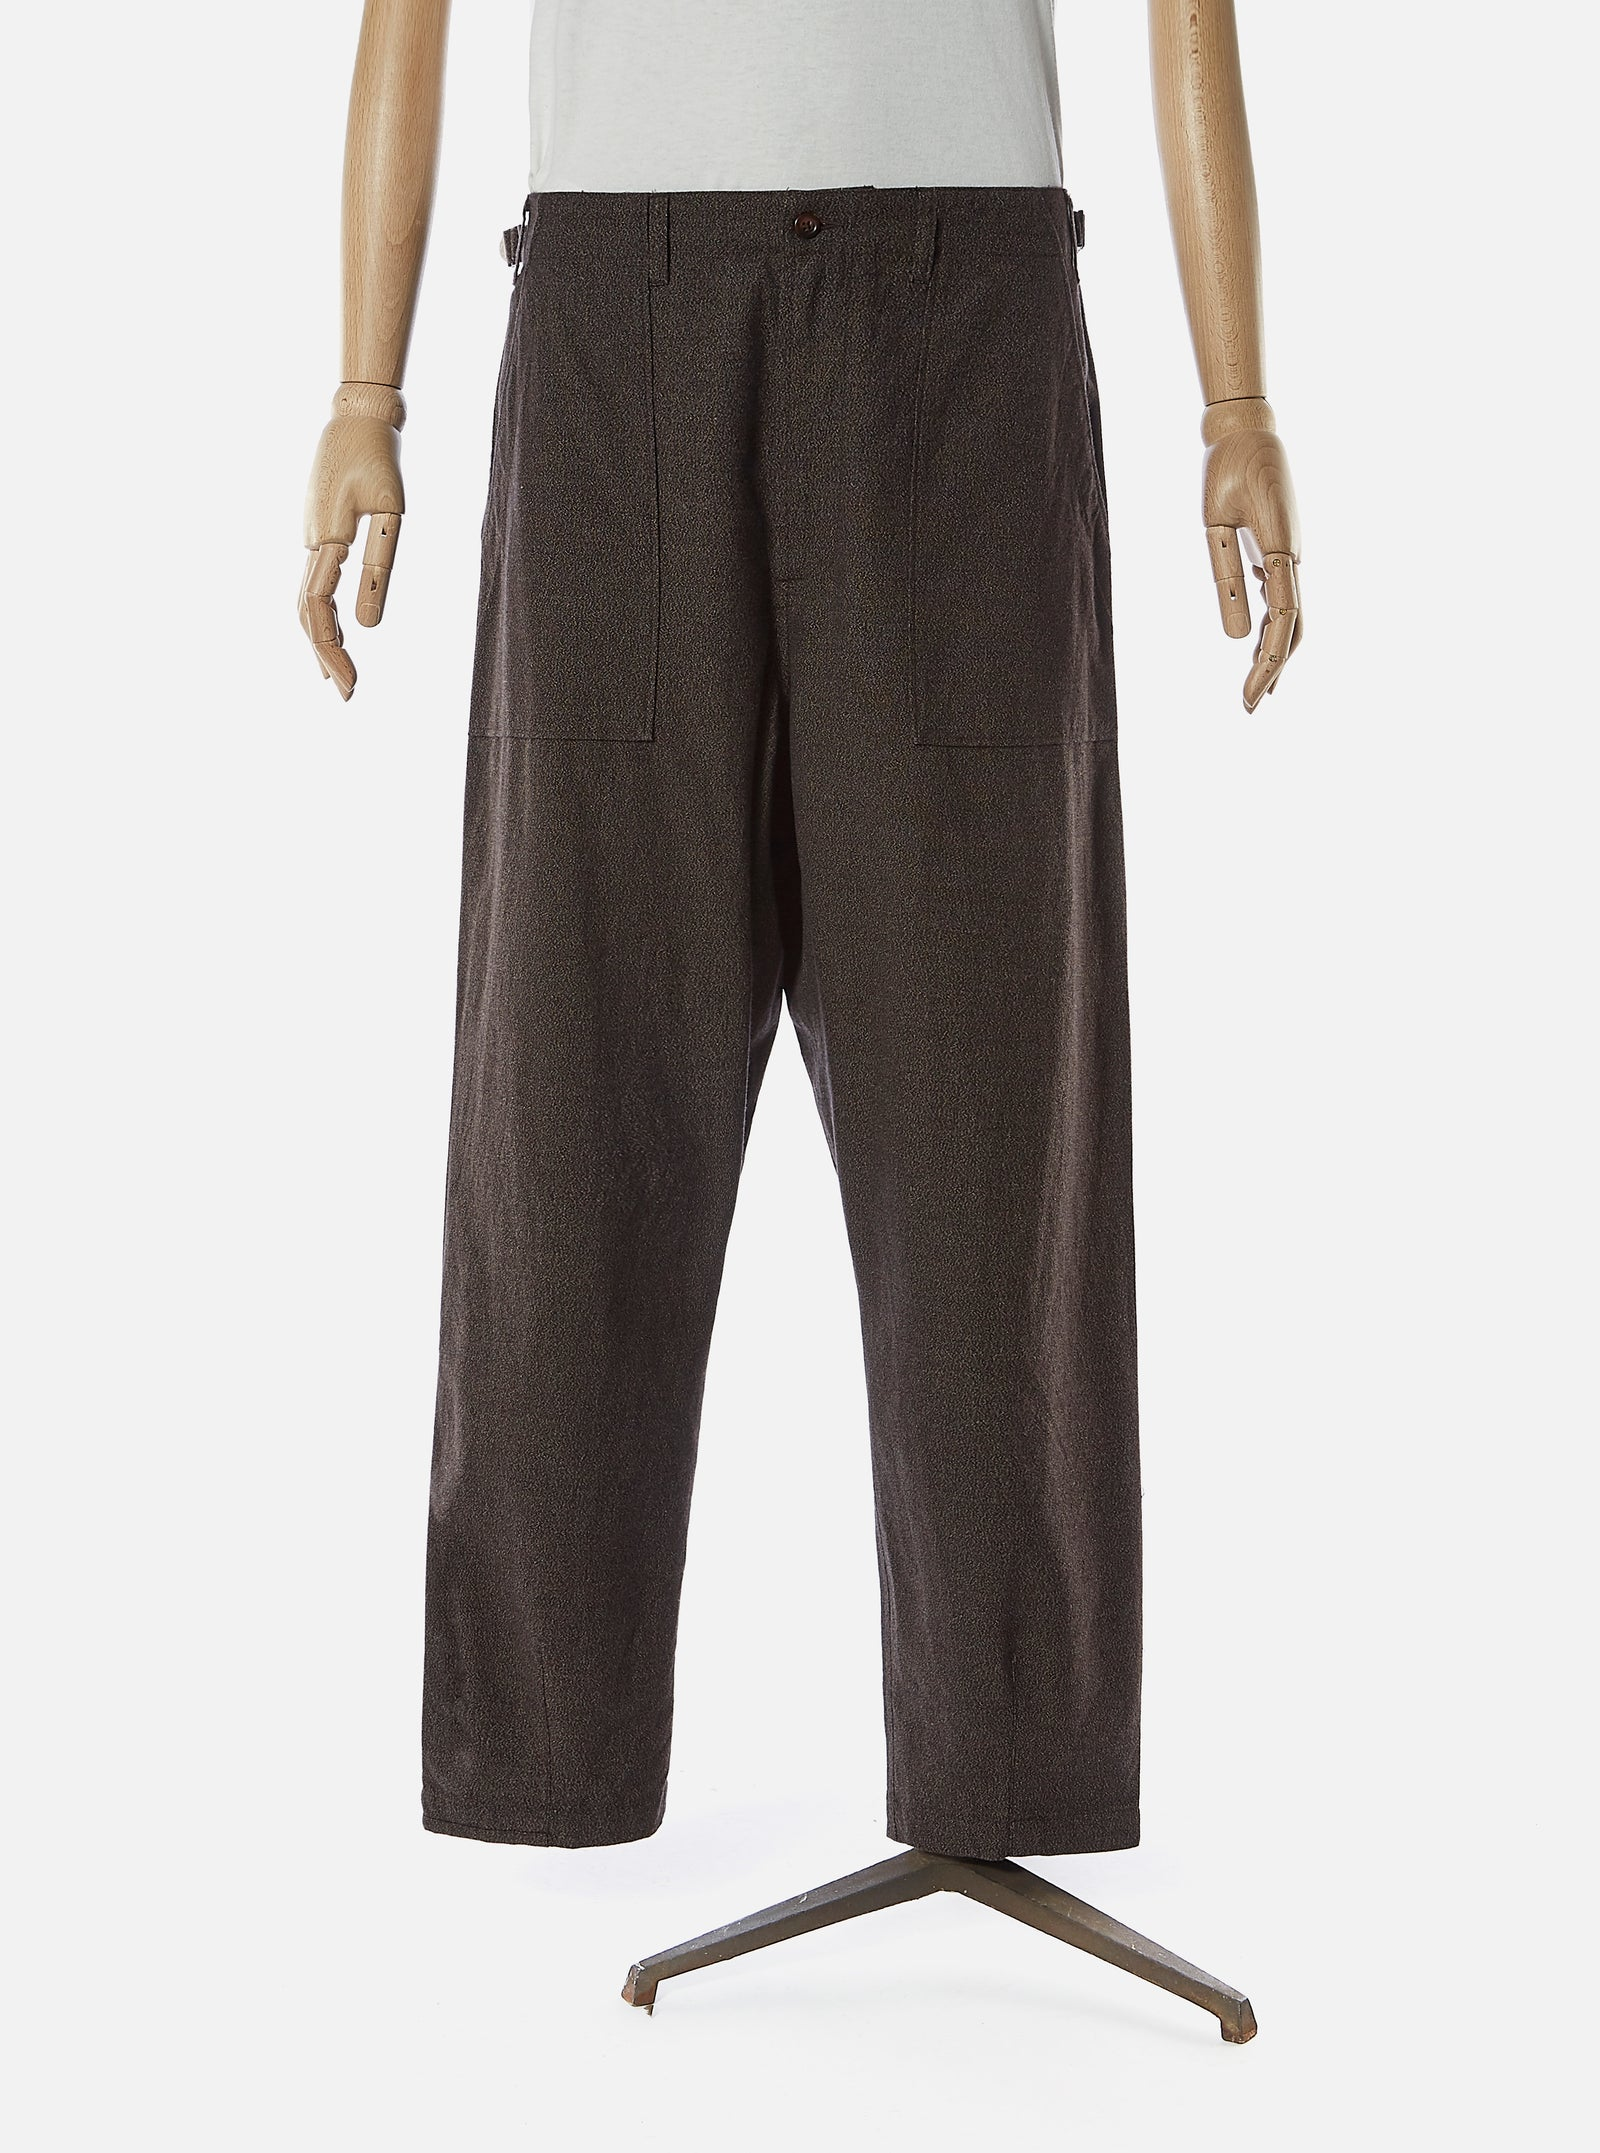 Universal Works Patched Mill Fatigue Pant in Chocolate Subalpino Cotton